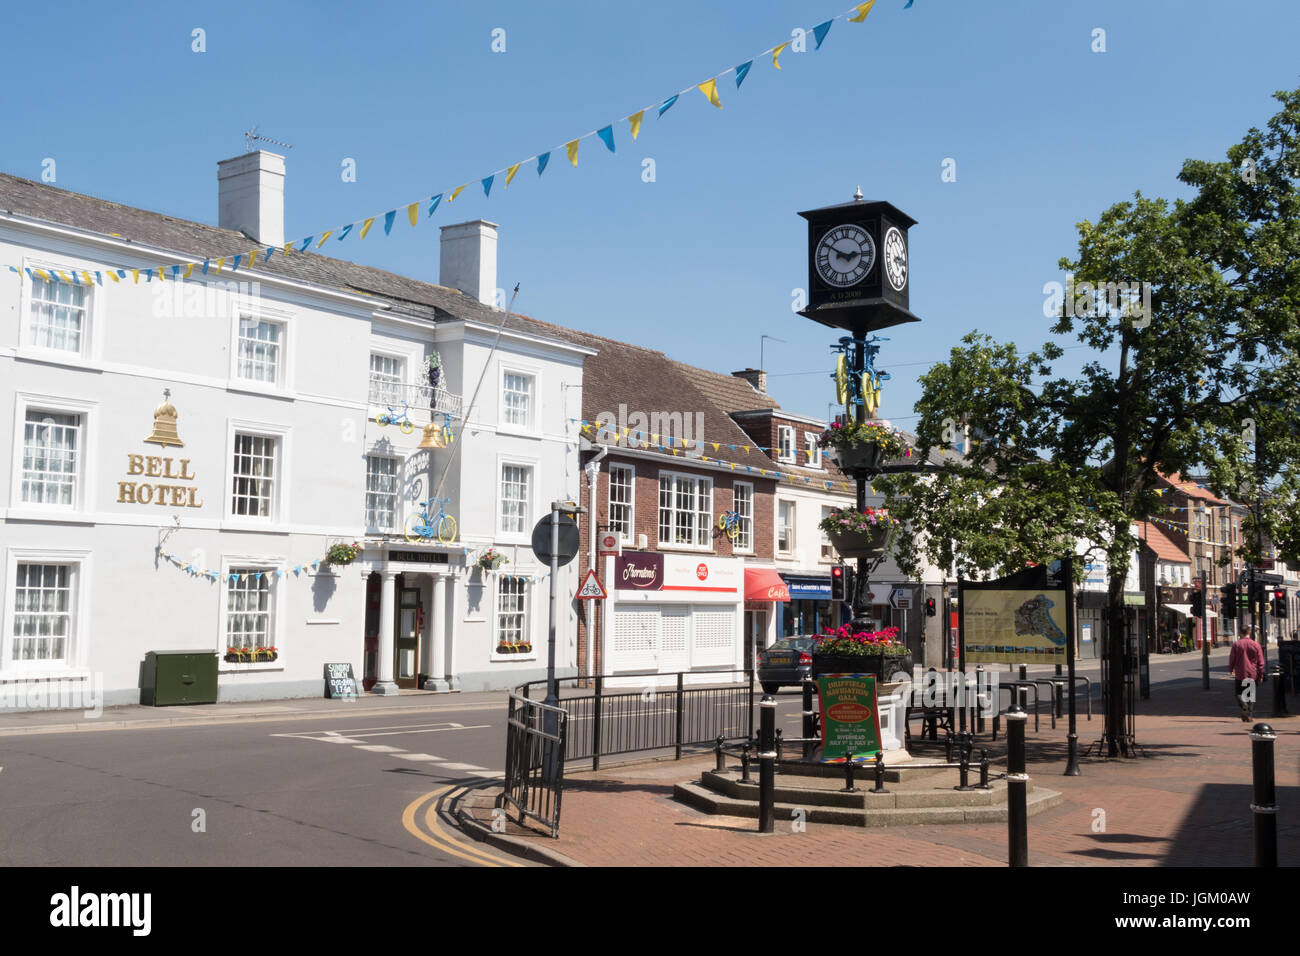 The Main Sreet in Driffield, East Yorkshire - Stock Image